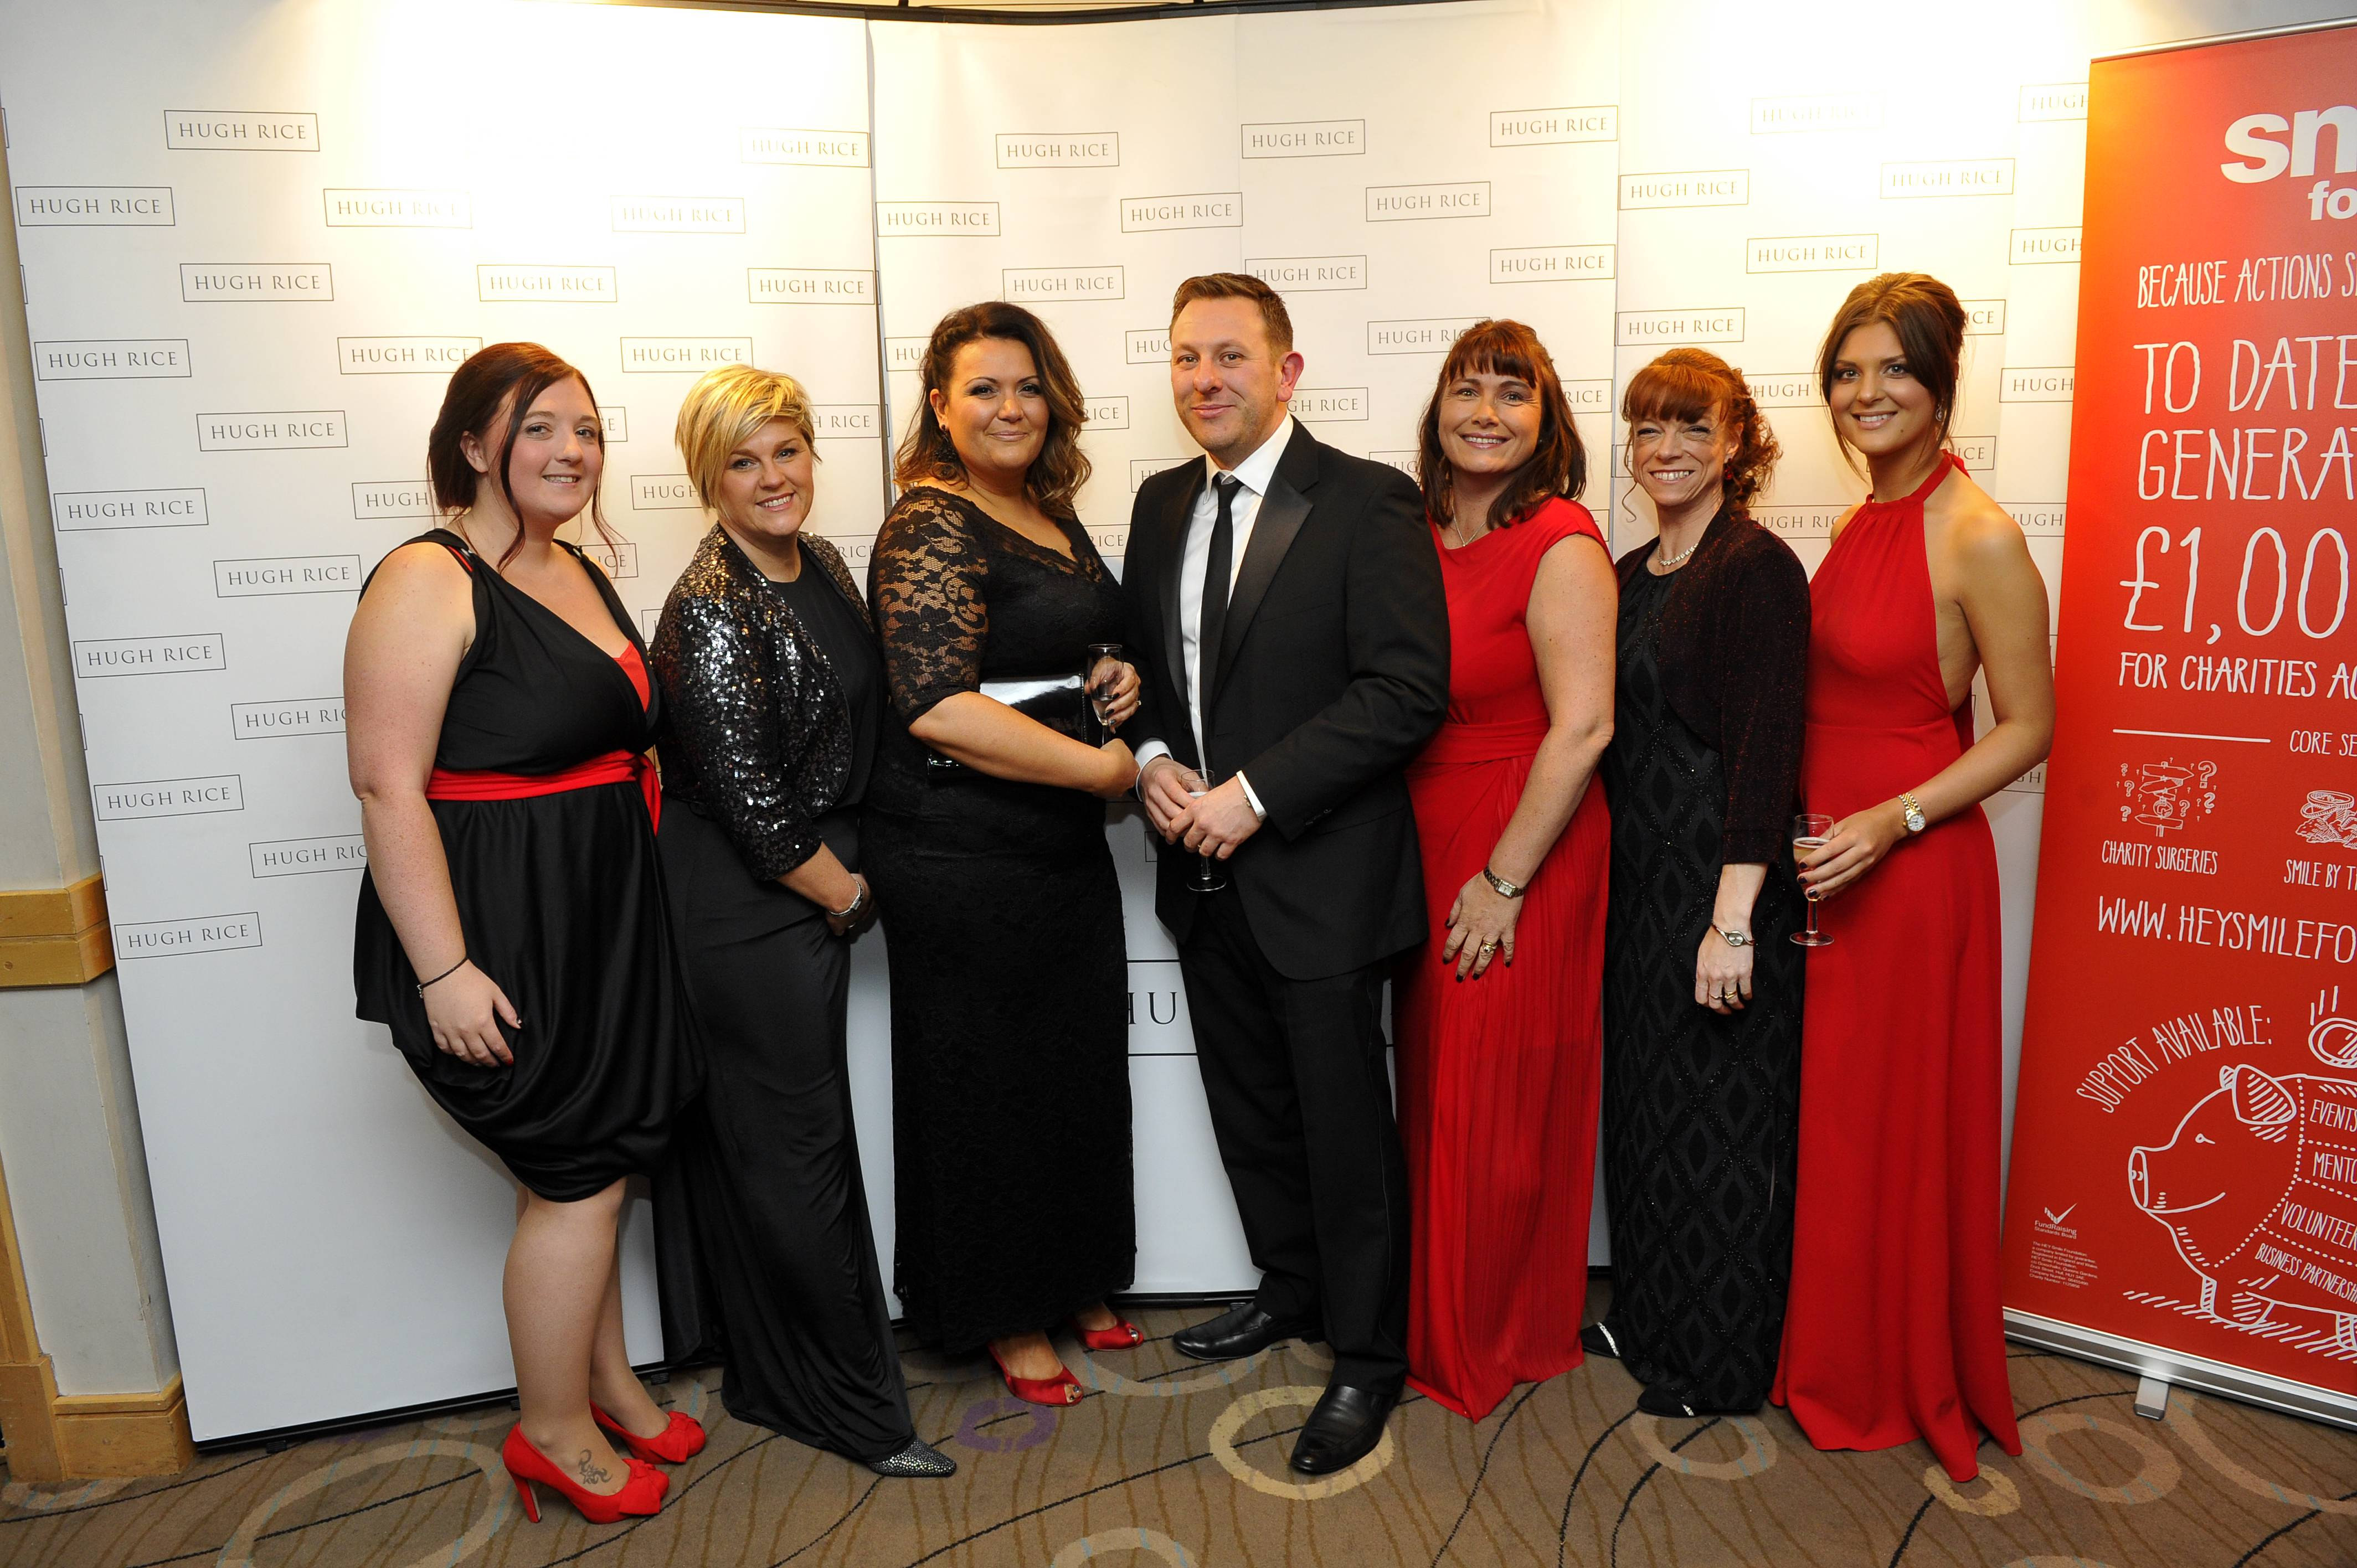 JOURNAL DIARY  14.11.15  -  The Smile Foundation held their Red and Black Ball at the KC Stadium, Hull.  From left are, Smile committee members, Sarah Shepherdson, Lynnsey Pilmer, Annabel Gray, Kevin Wilkie, Erica Cross, Claire Hill and Jessica Robinson.   Picture: Jack Harland  Prints can be ordered from www.thisisphotosales.co.uk/hullandeastriding or telephone 08444 060 910